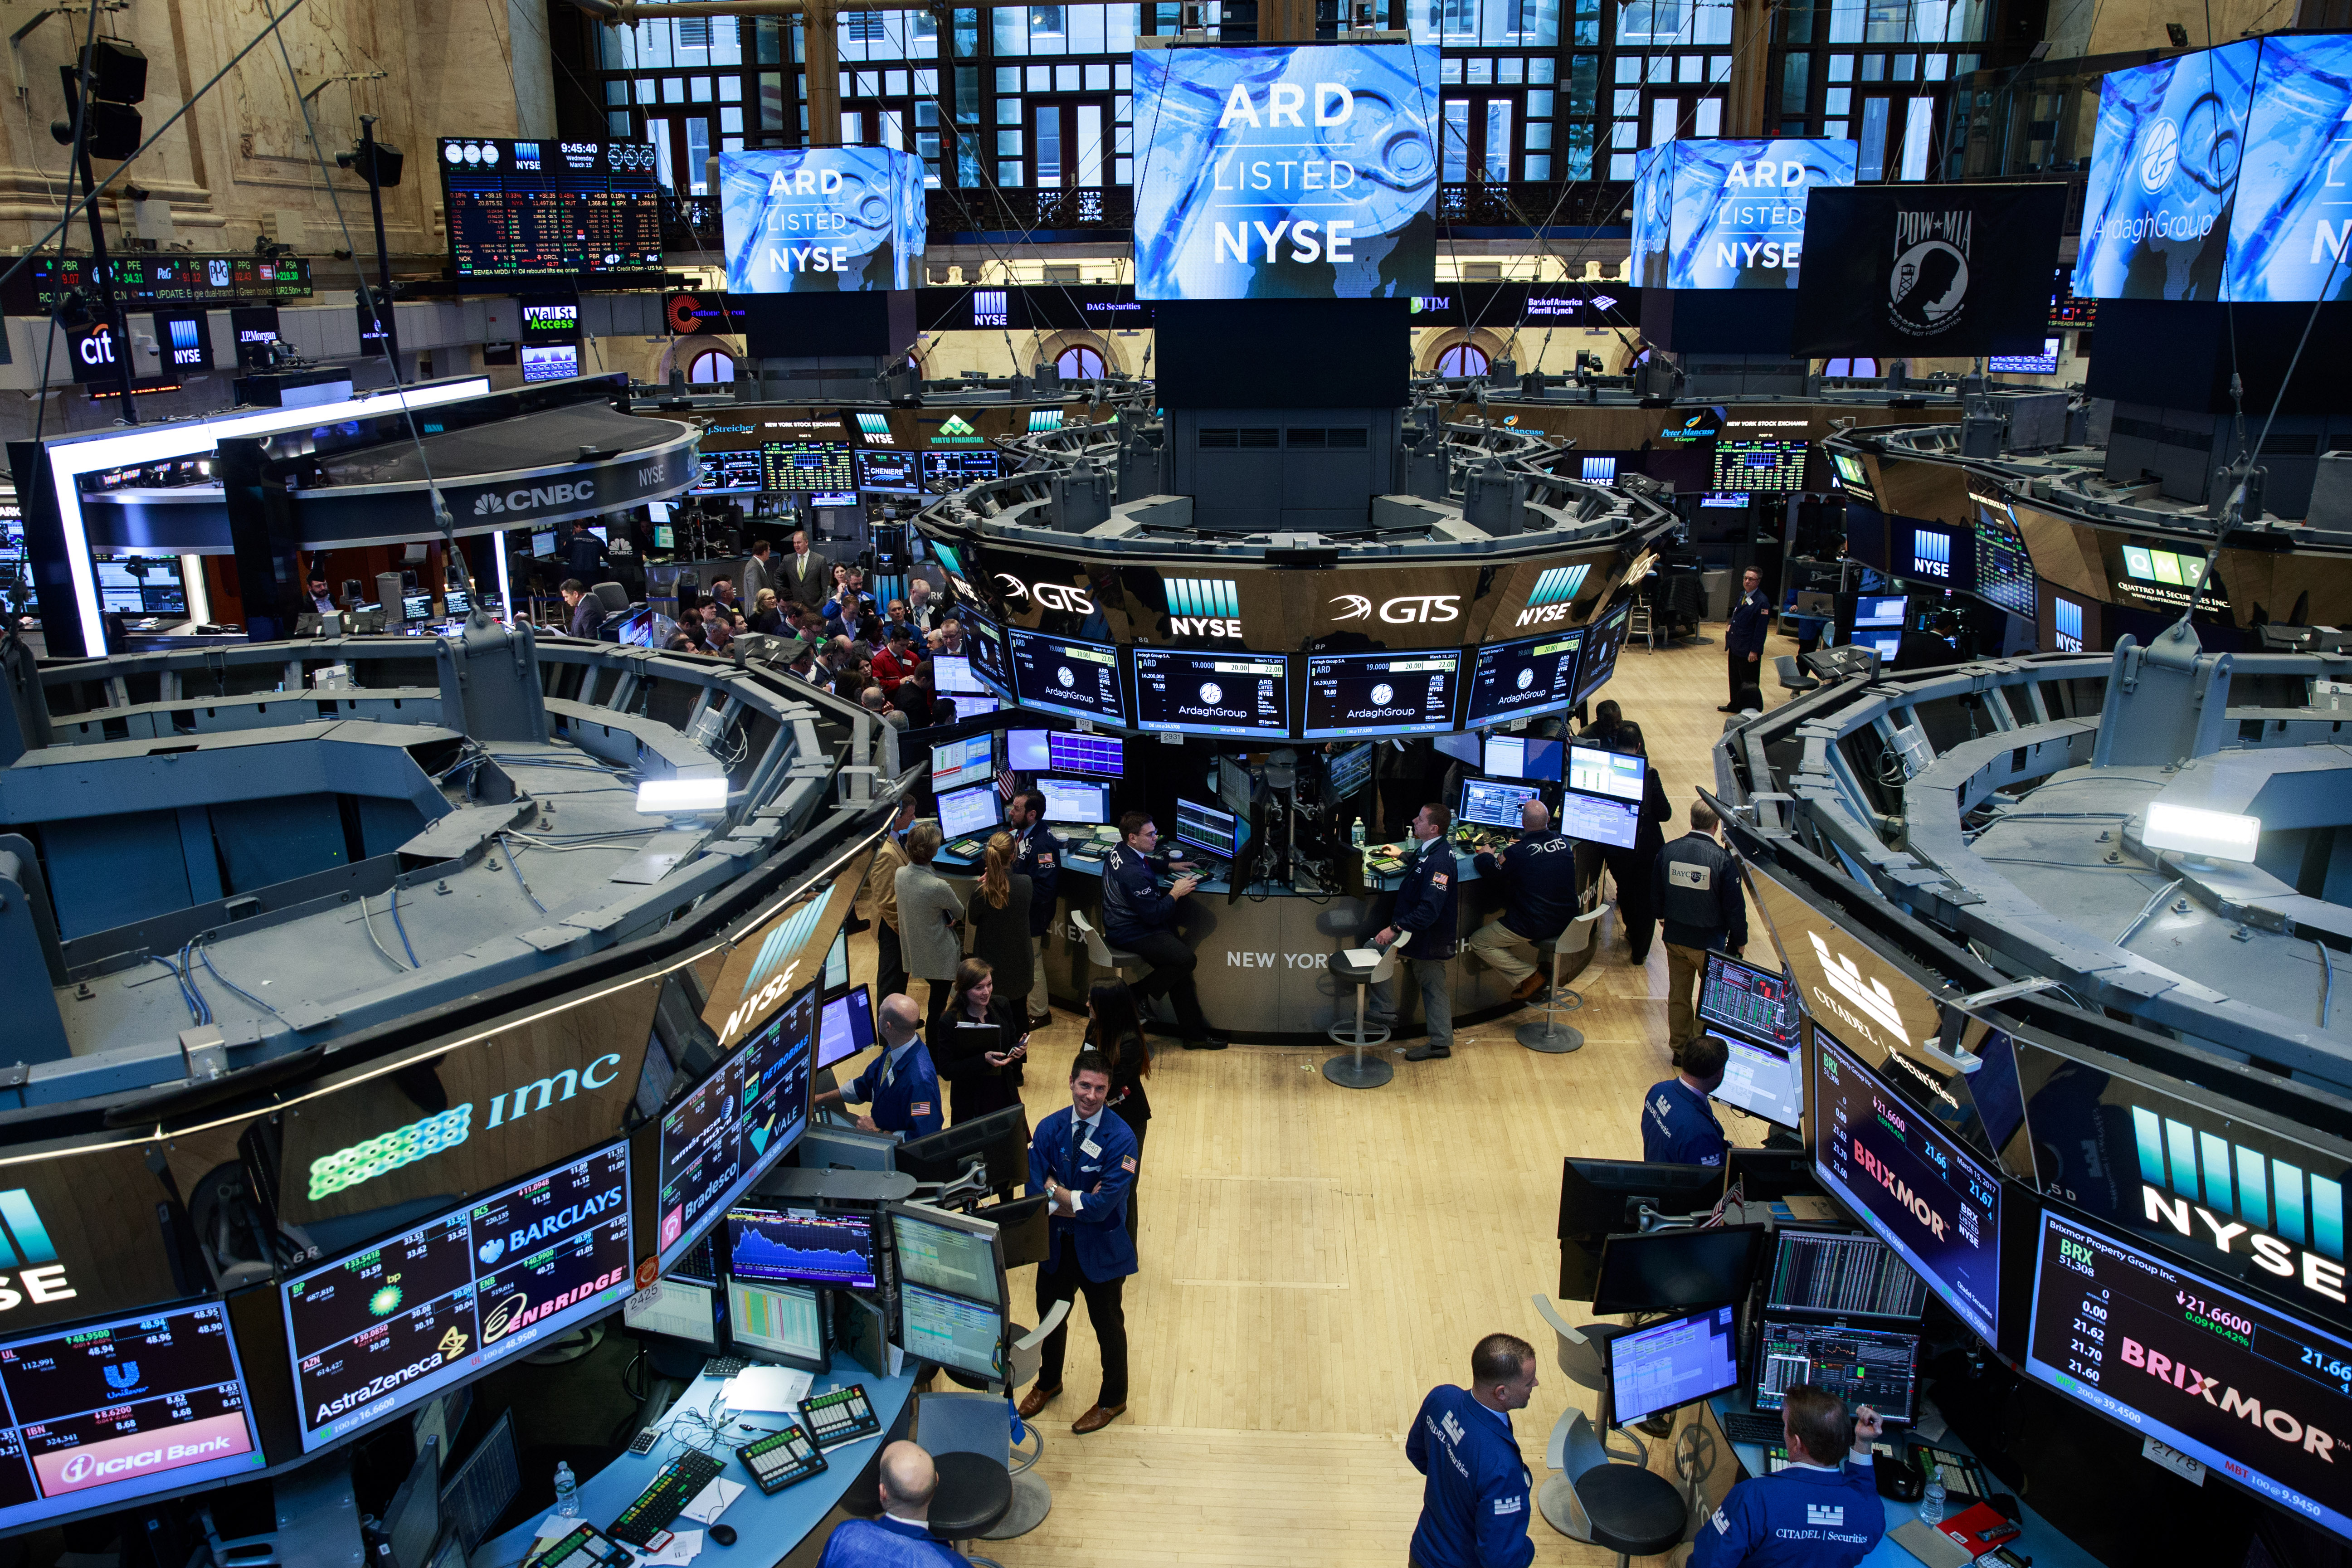 Markets React To Expected Federal Reserve Rate Hike